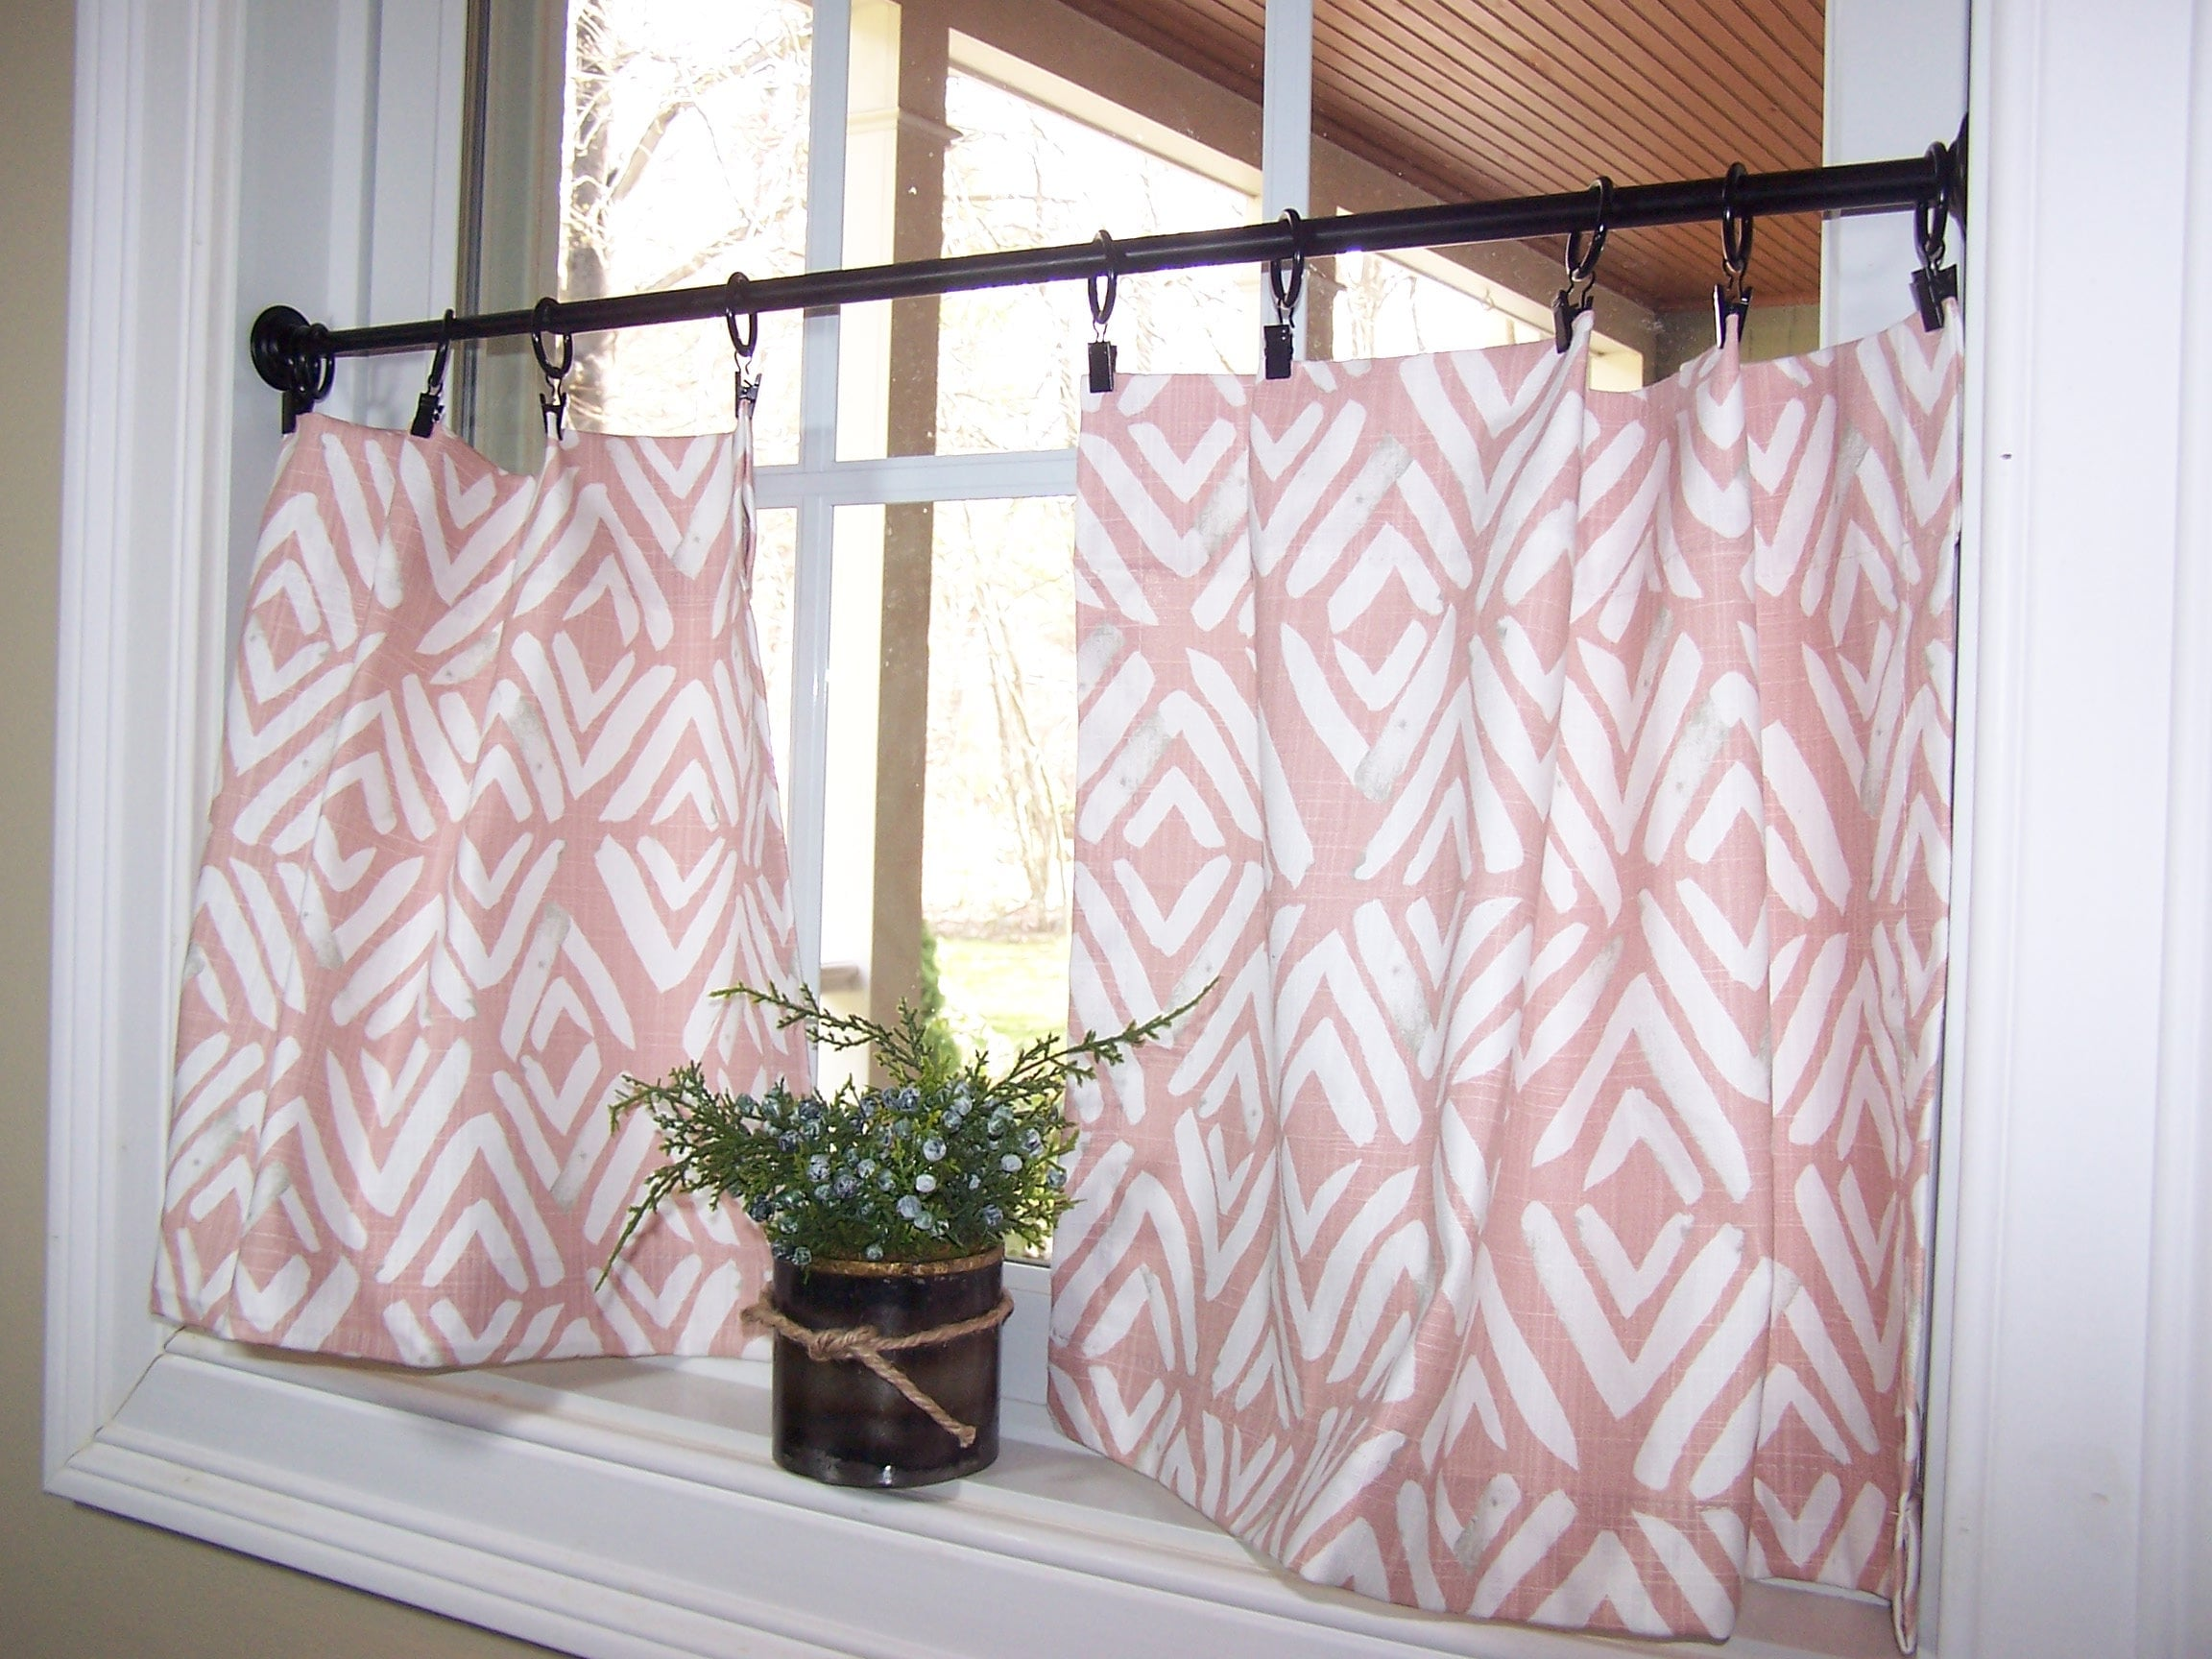 Blush Pink Curtains Cafe Curtains Tier Curtains Kitchen Etsy